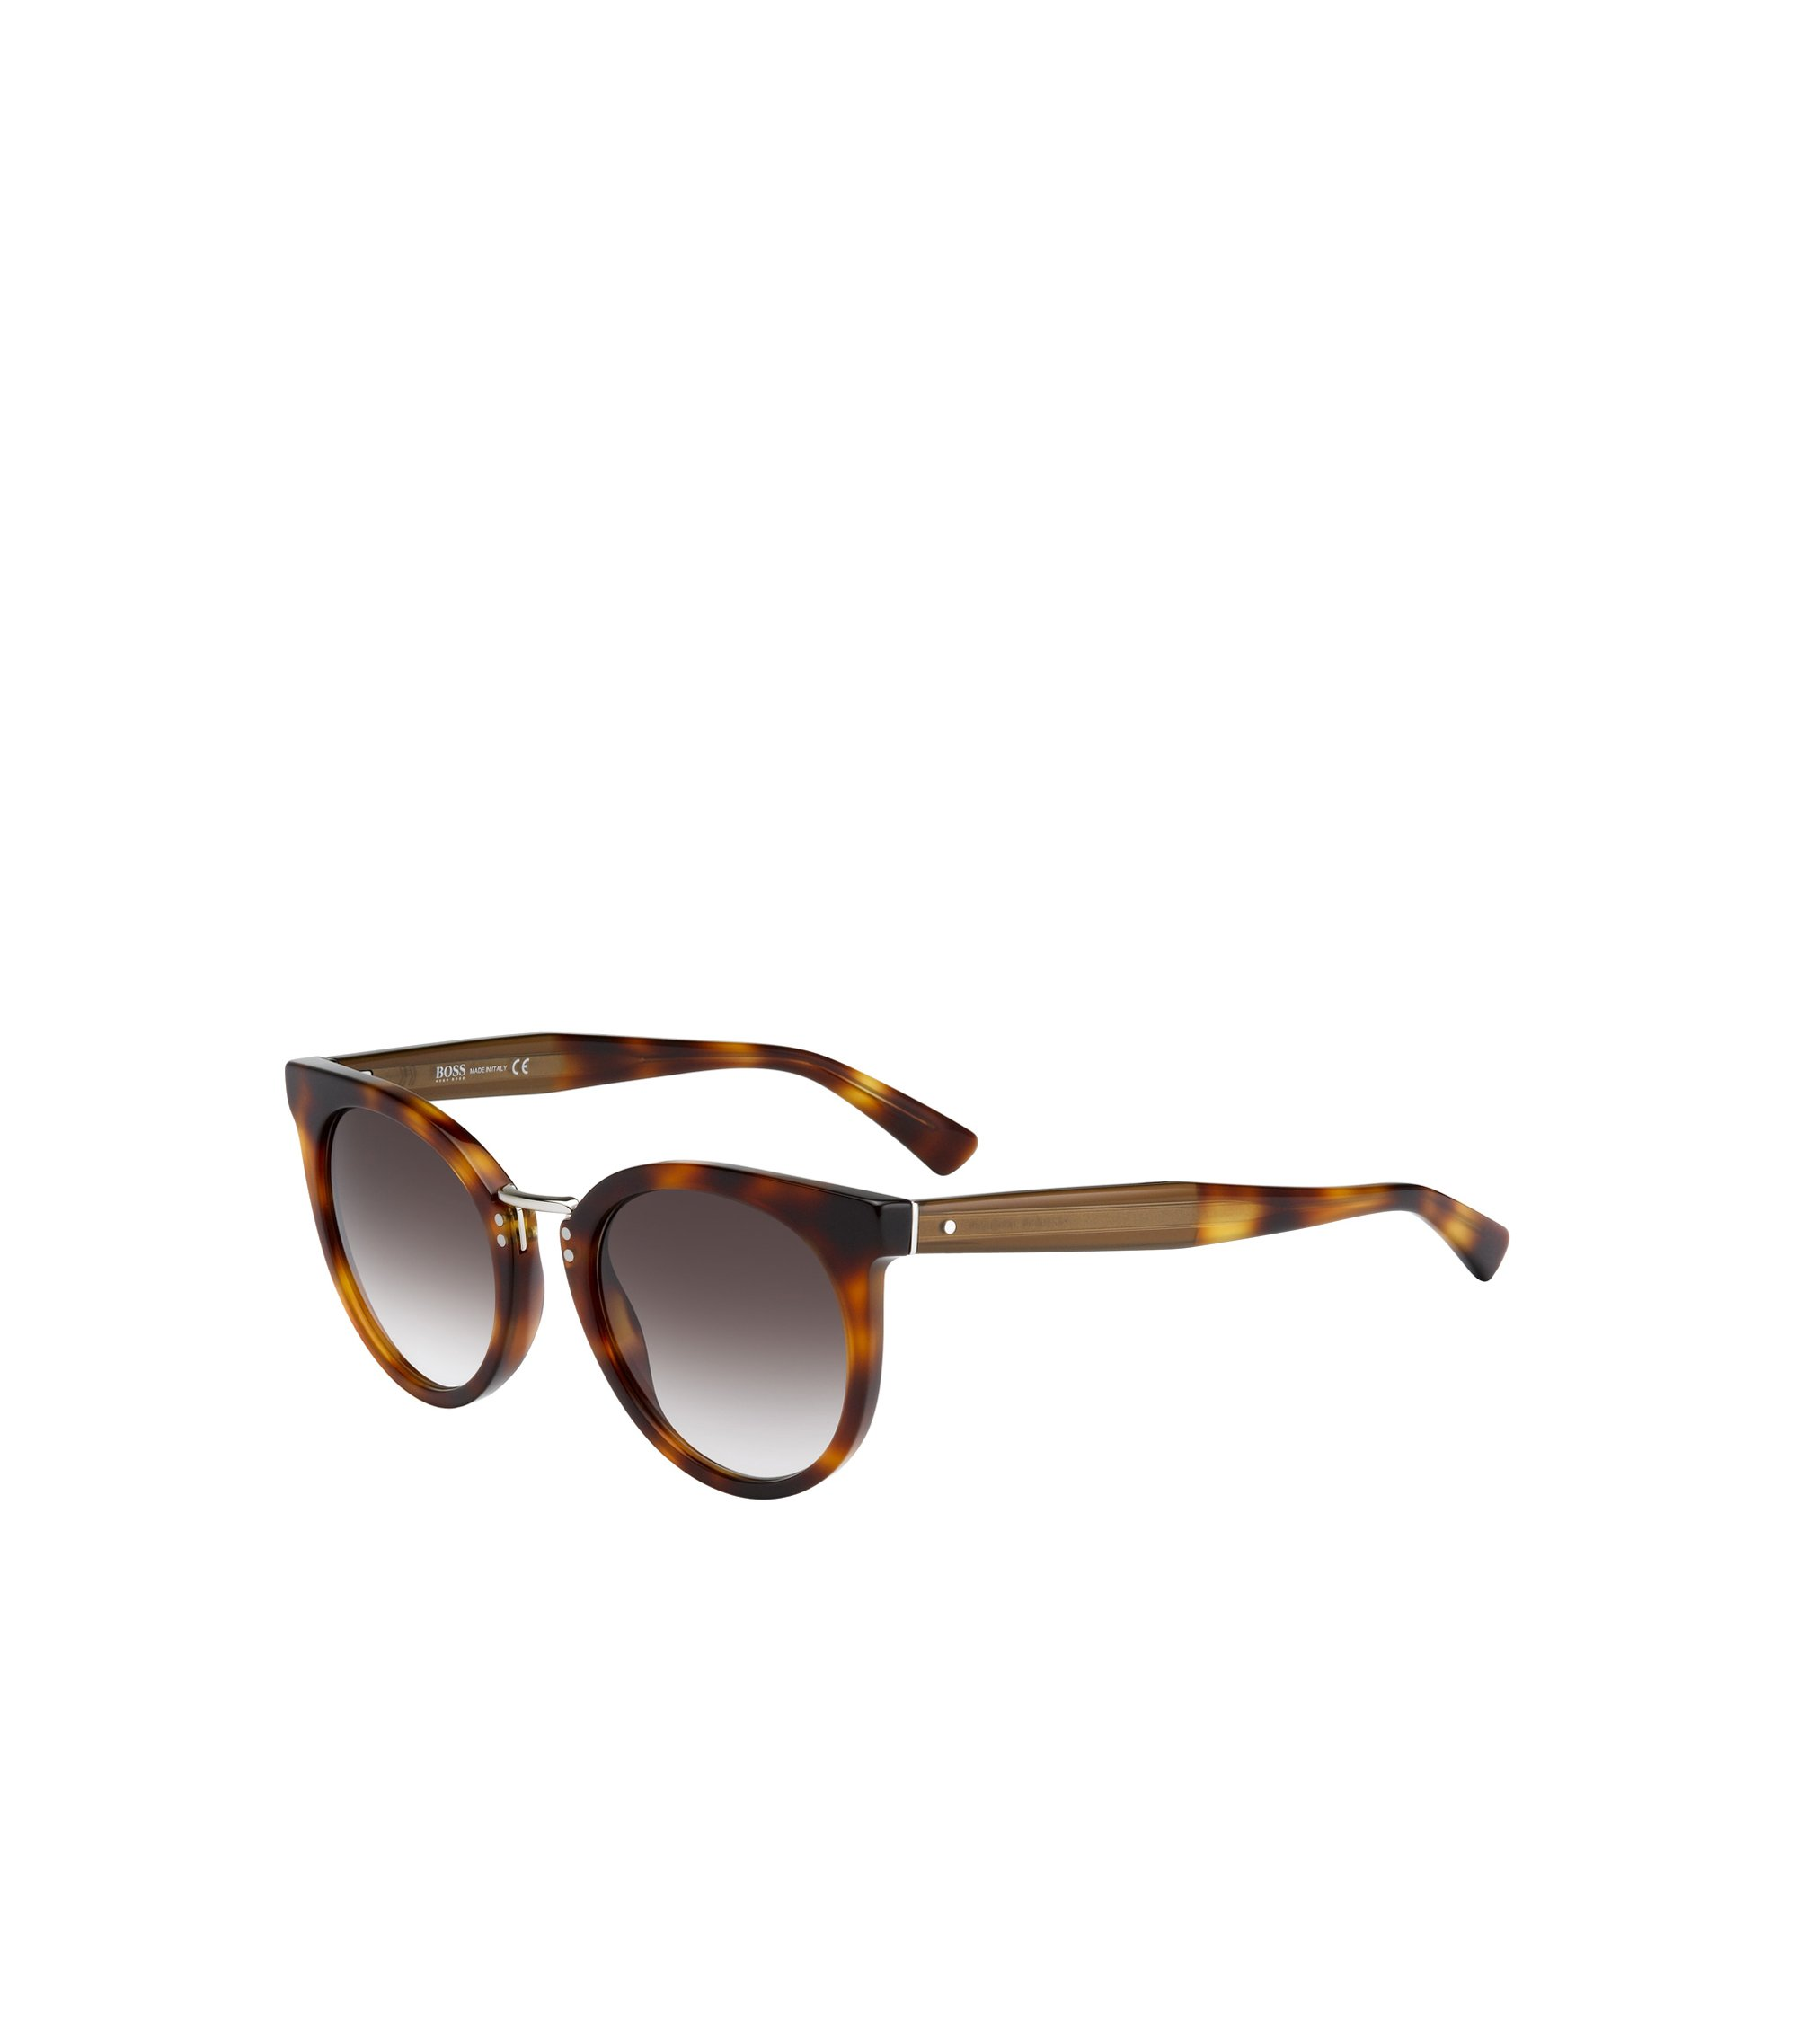 Black Lens Rounded Cateye Havana Sunglasses | BOSS 0793S, Assorted-Pre-Pack